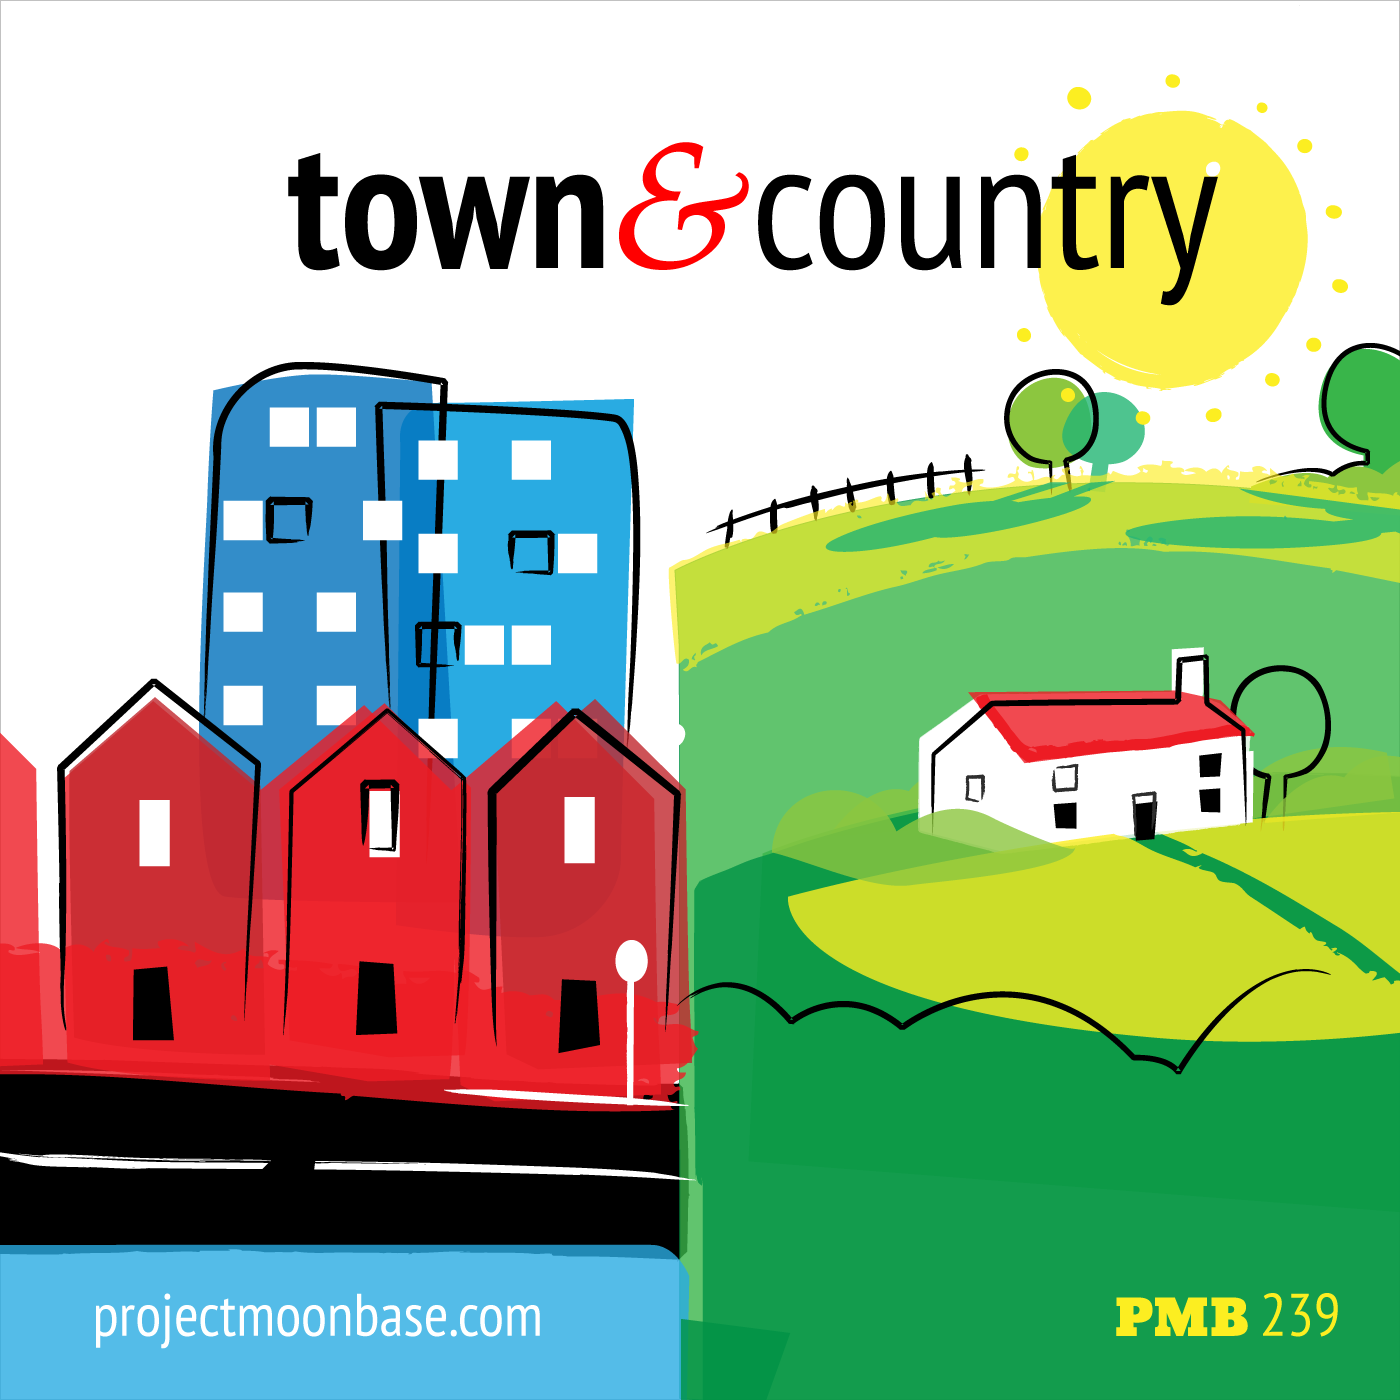 PMB239: Town and Country